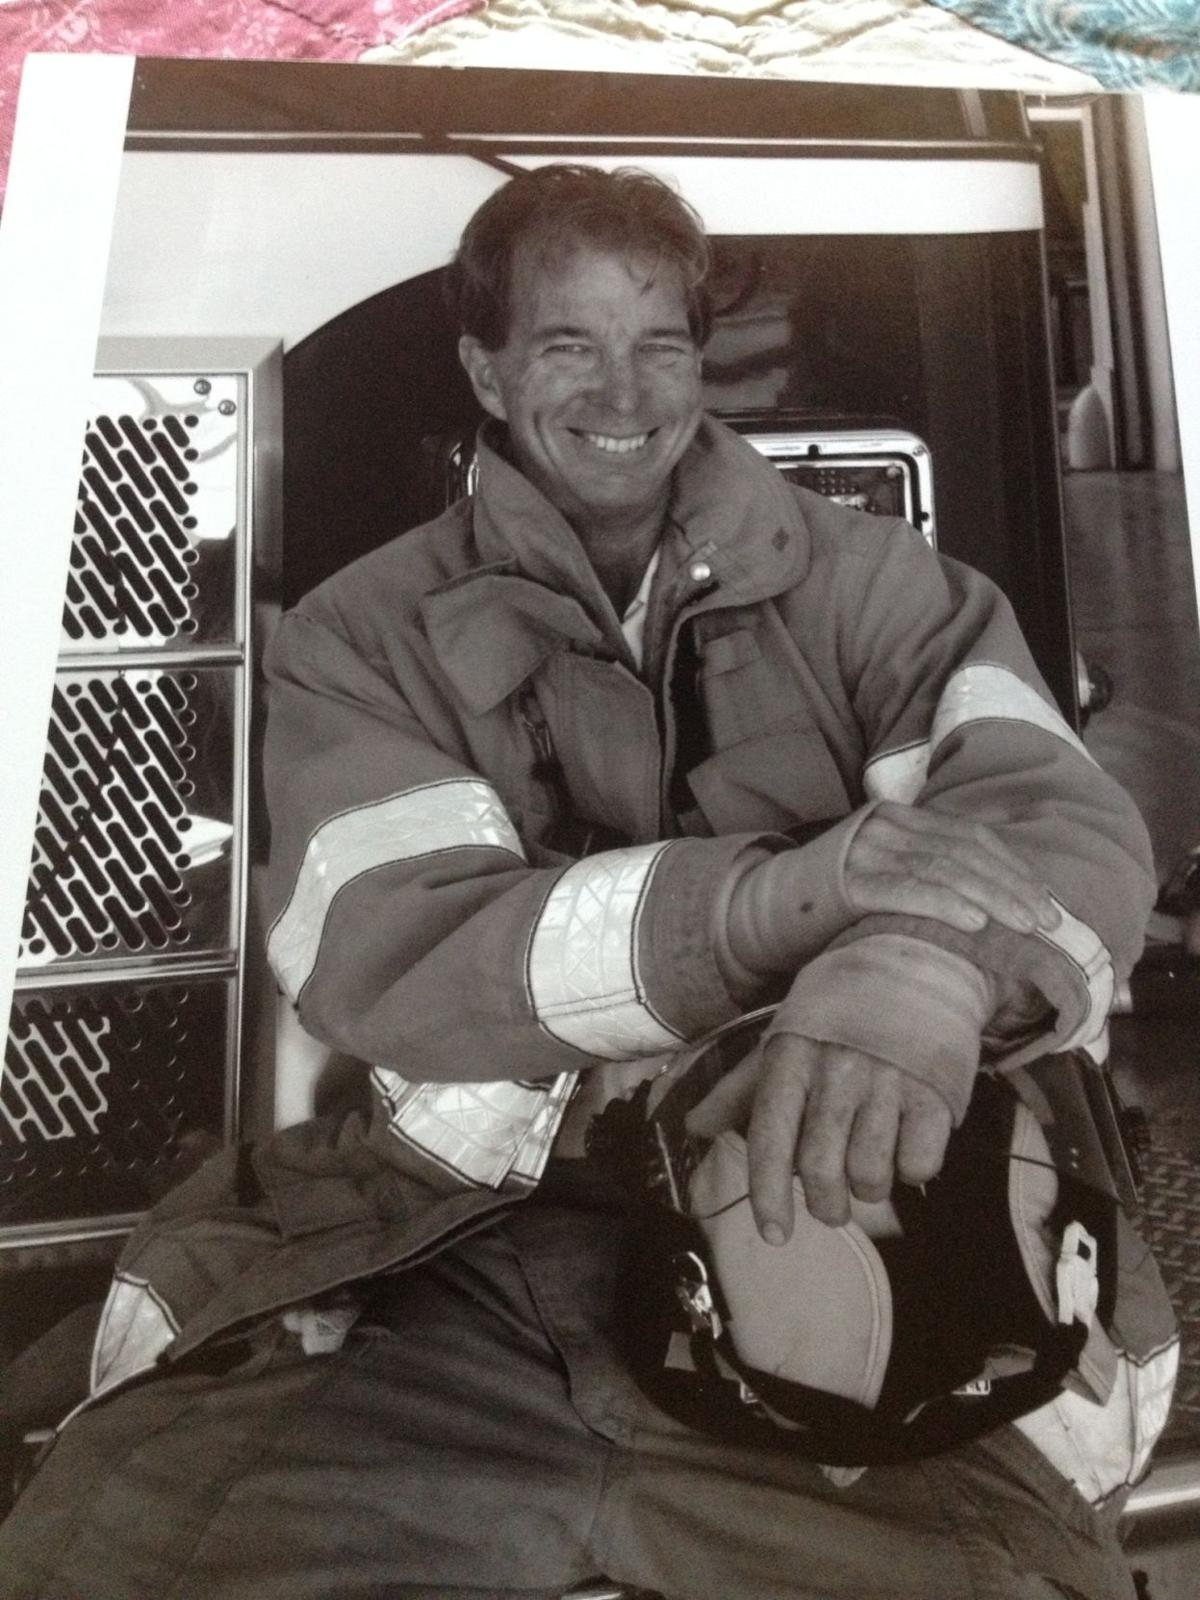 Ron Erbel in the early days as a volunteer firefighter on Key Biscayne.